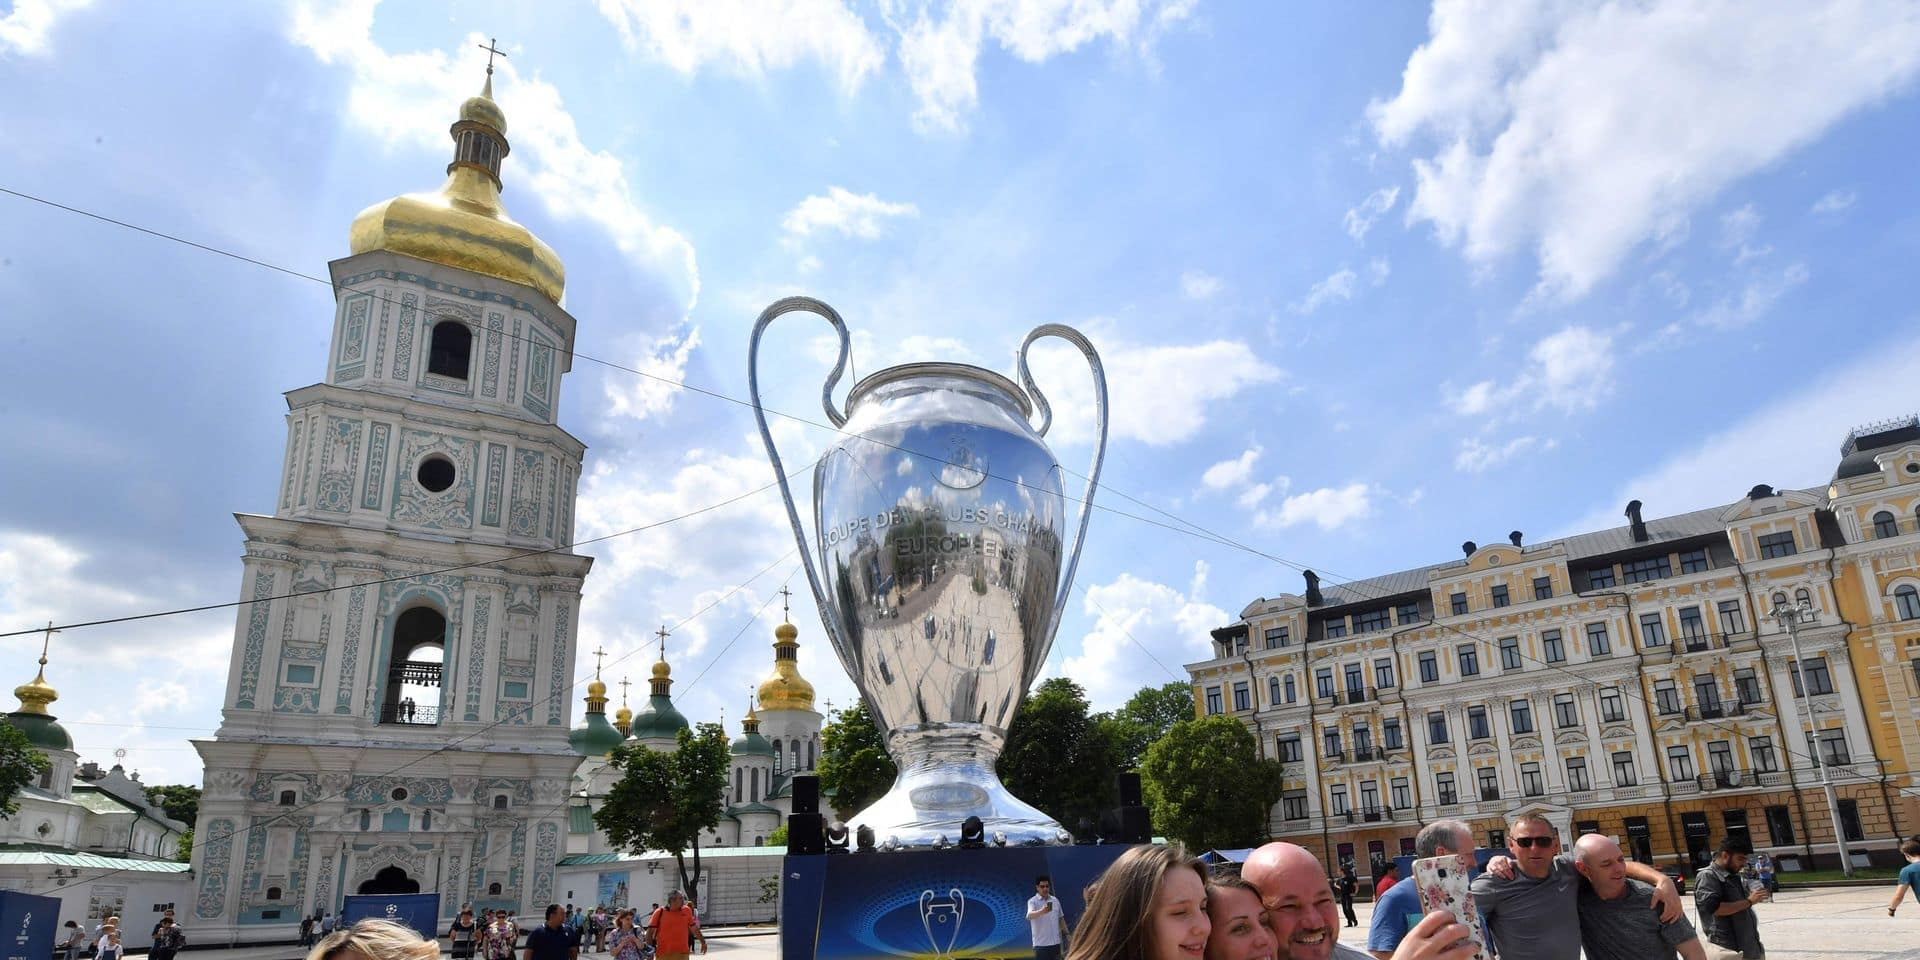 People make selfies with a huge trophy set in the Ukrainian capital of Kiev on May 25, 2018, a day before of the 2018 UEFA Champions League Cup final football match between Real Madrid and Liverpool FC at the Olimpiyskiy Stadium. / AFP PHOTO / Sergei SUPINSKY